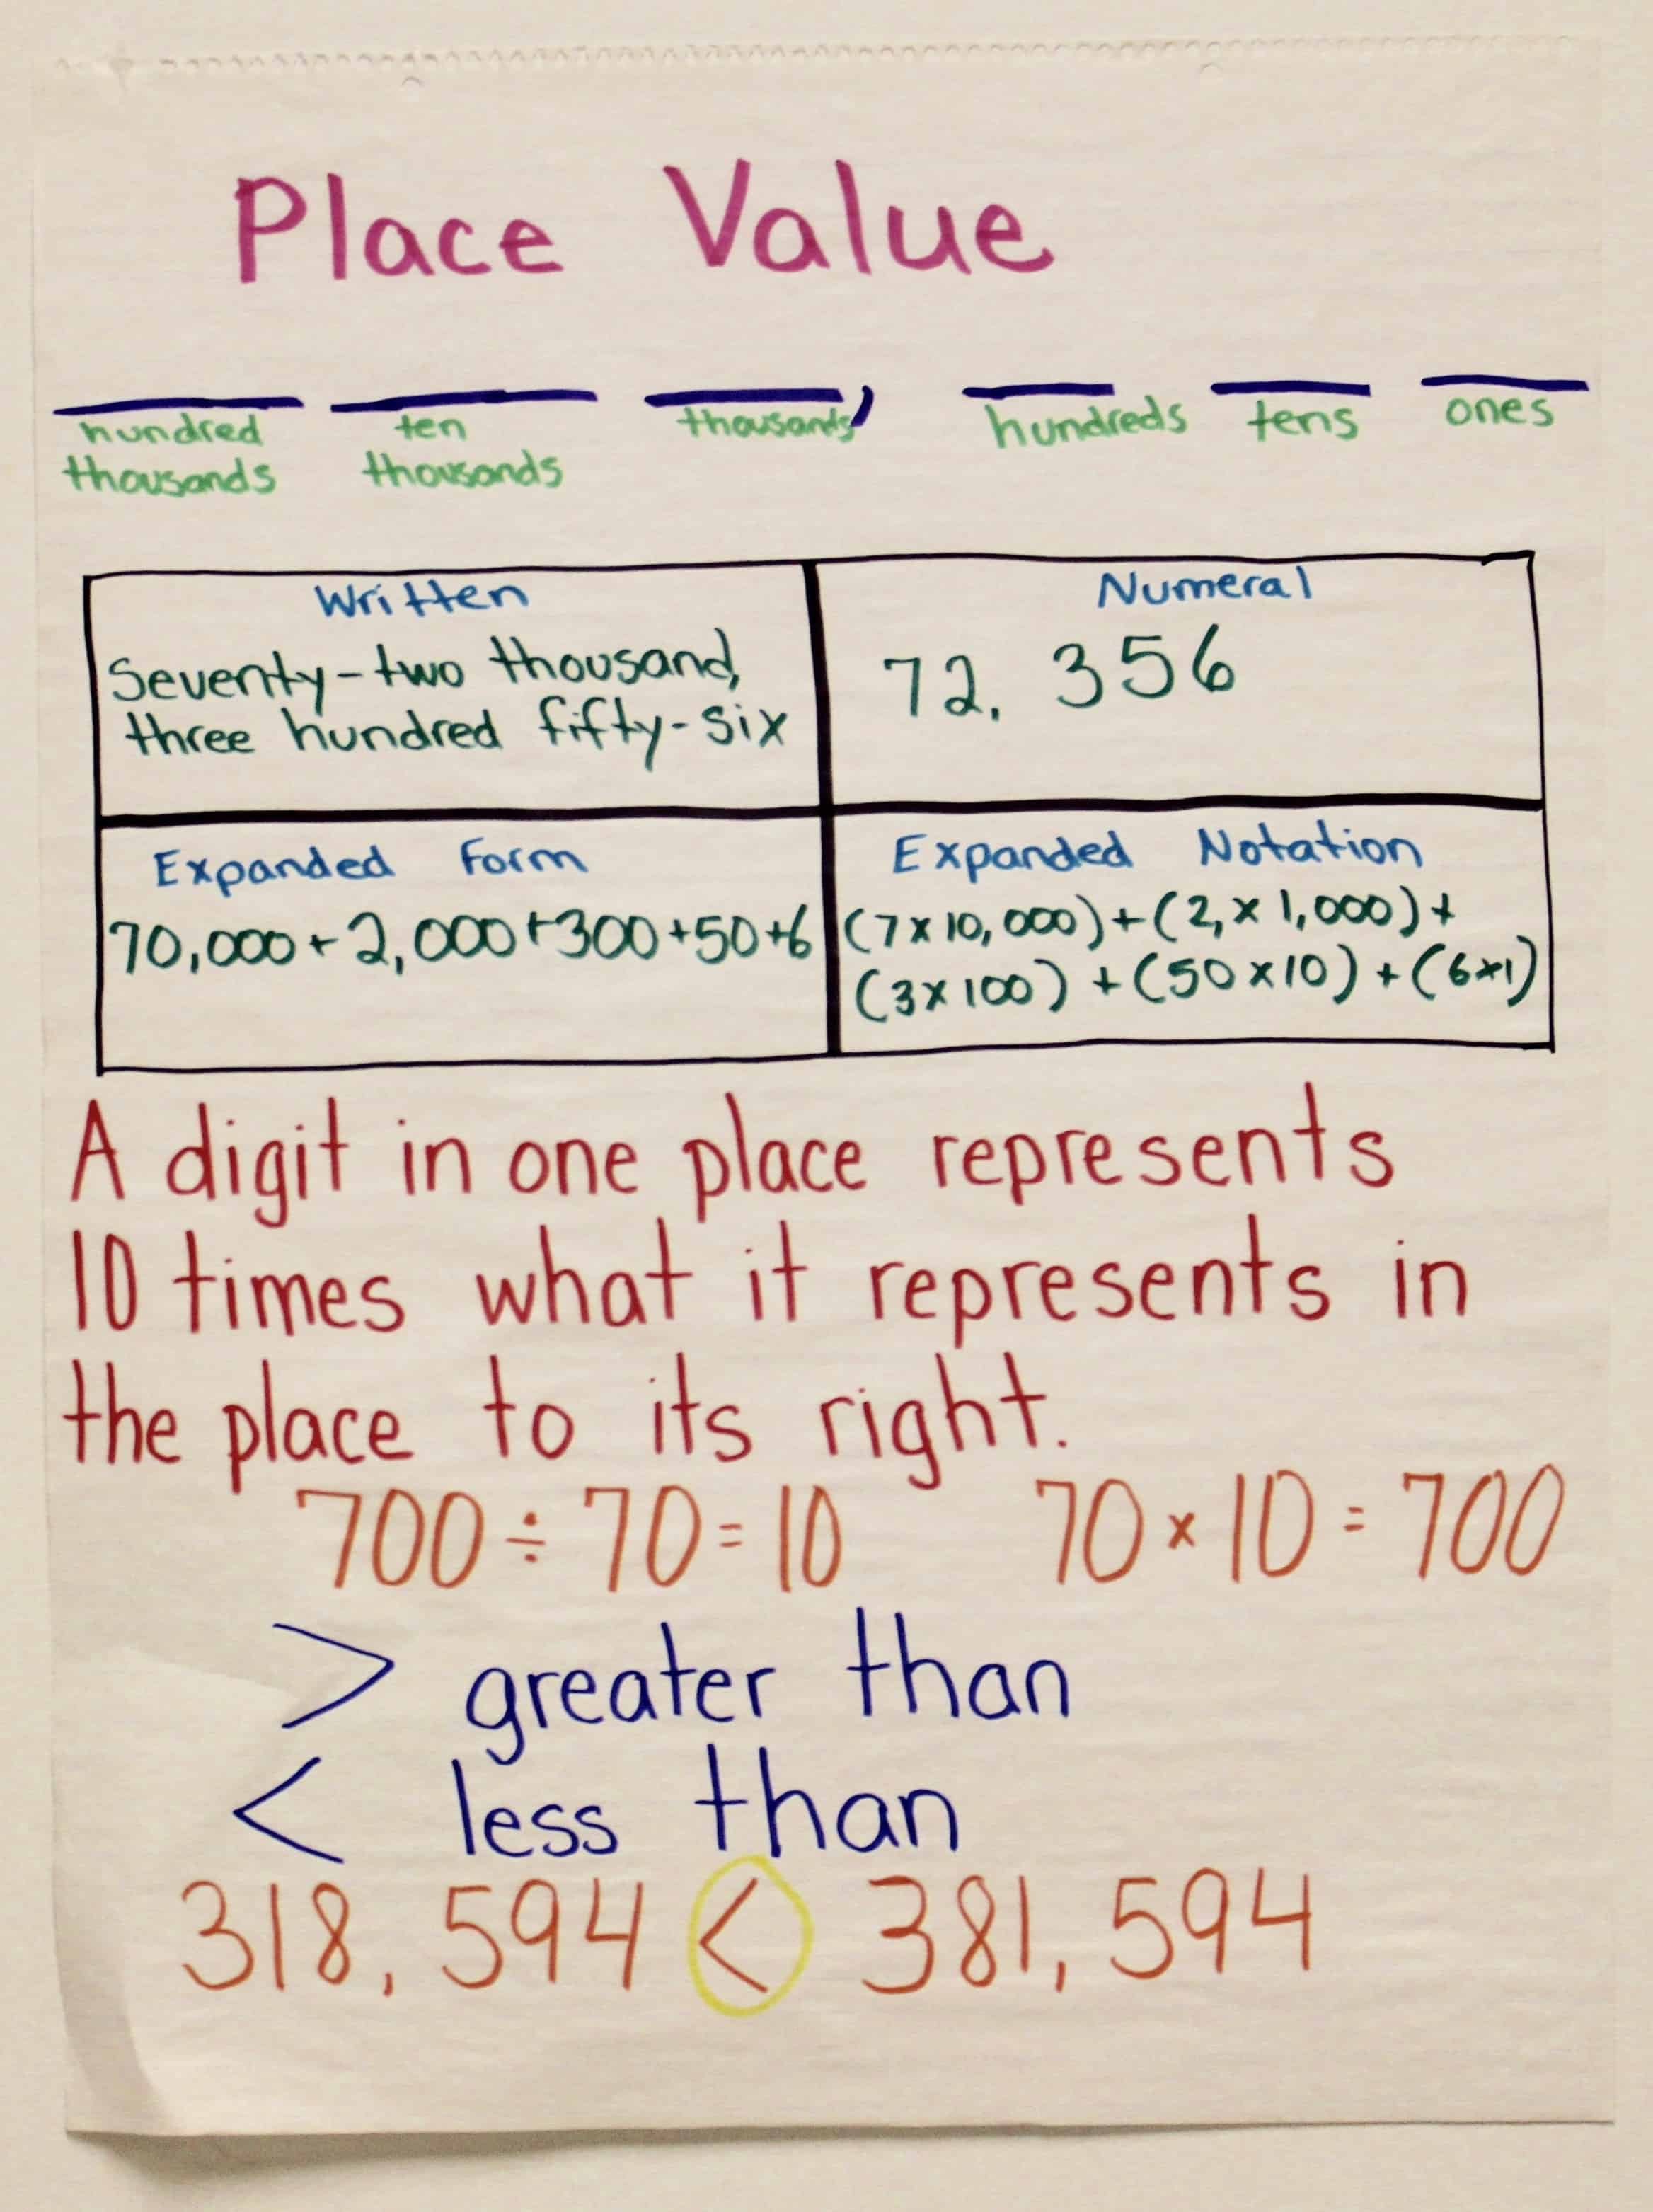 Introducing Place Value - Ashleigh's Education Journey